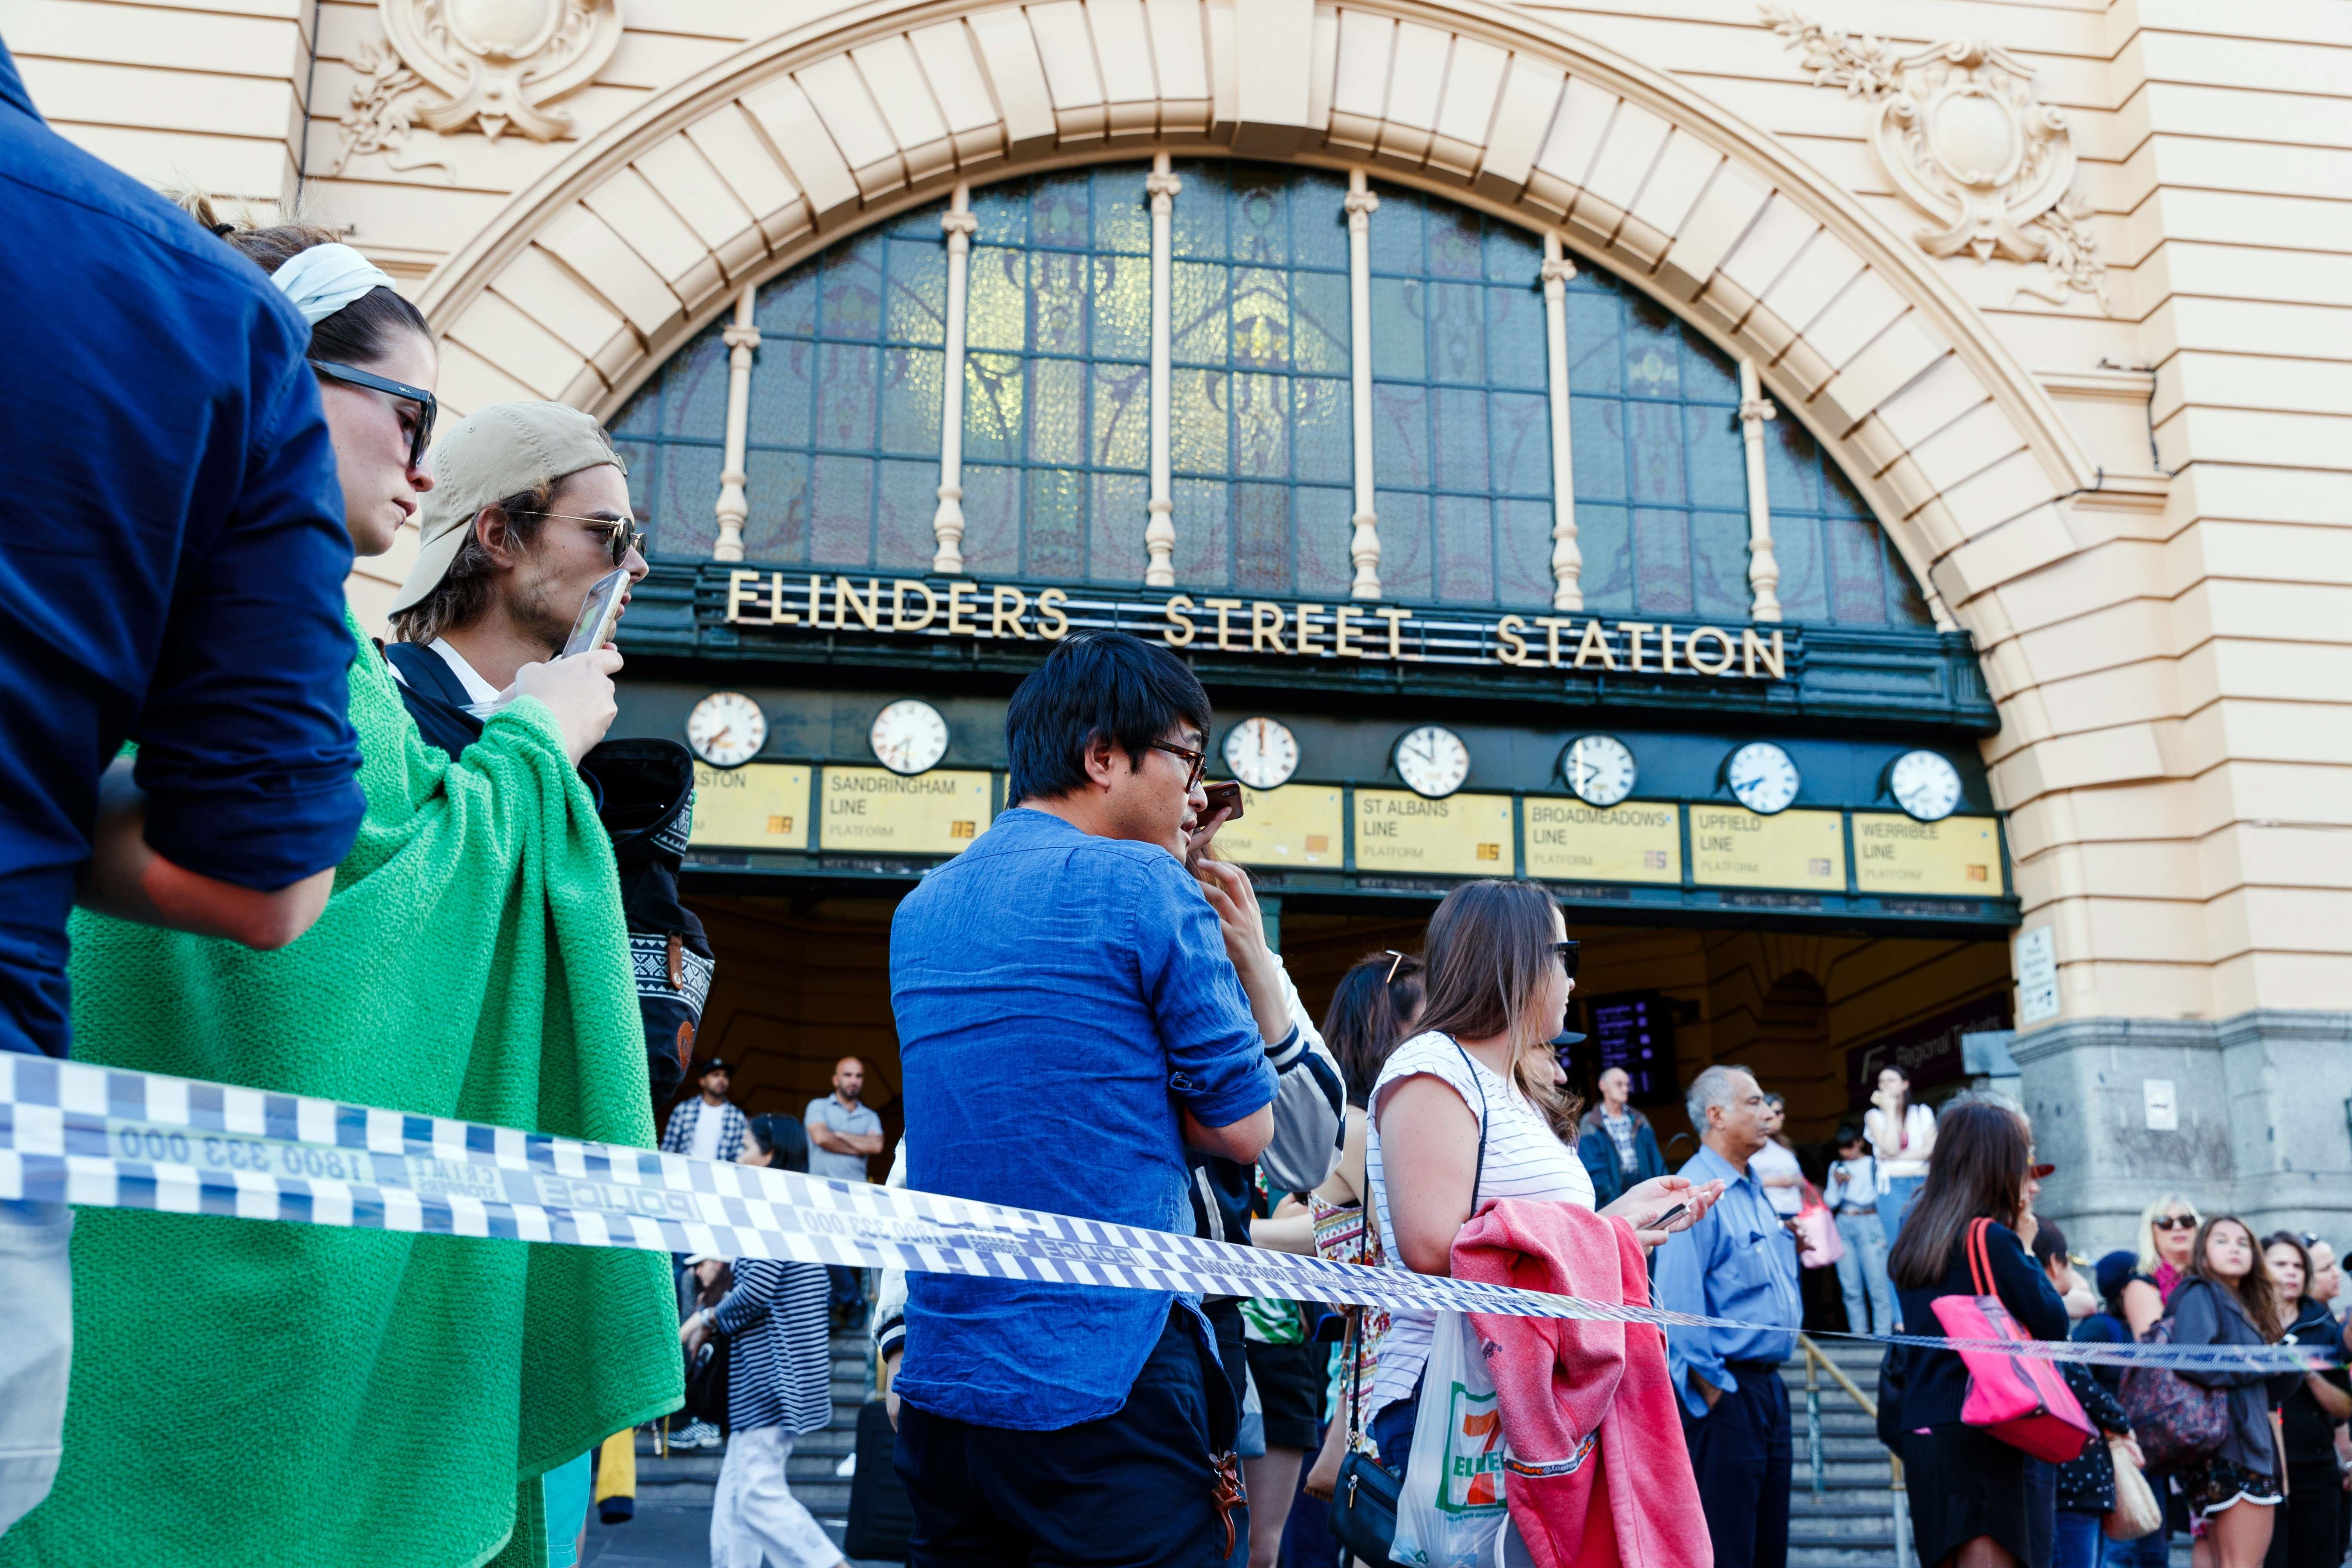 "<div class=""meta image-caption""><div class=""origin-logo origin-image none""><span>none</span></div><span class=""caption-text"">People gather at the scene of where a car ran over pedestrians in Flinders Street in Melbourne on December 21, 2017. (MARK PETERSON/AFP/Getty Images)</span></div>"